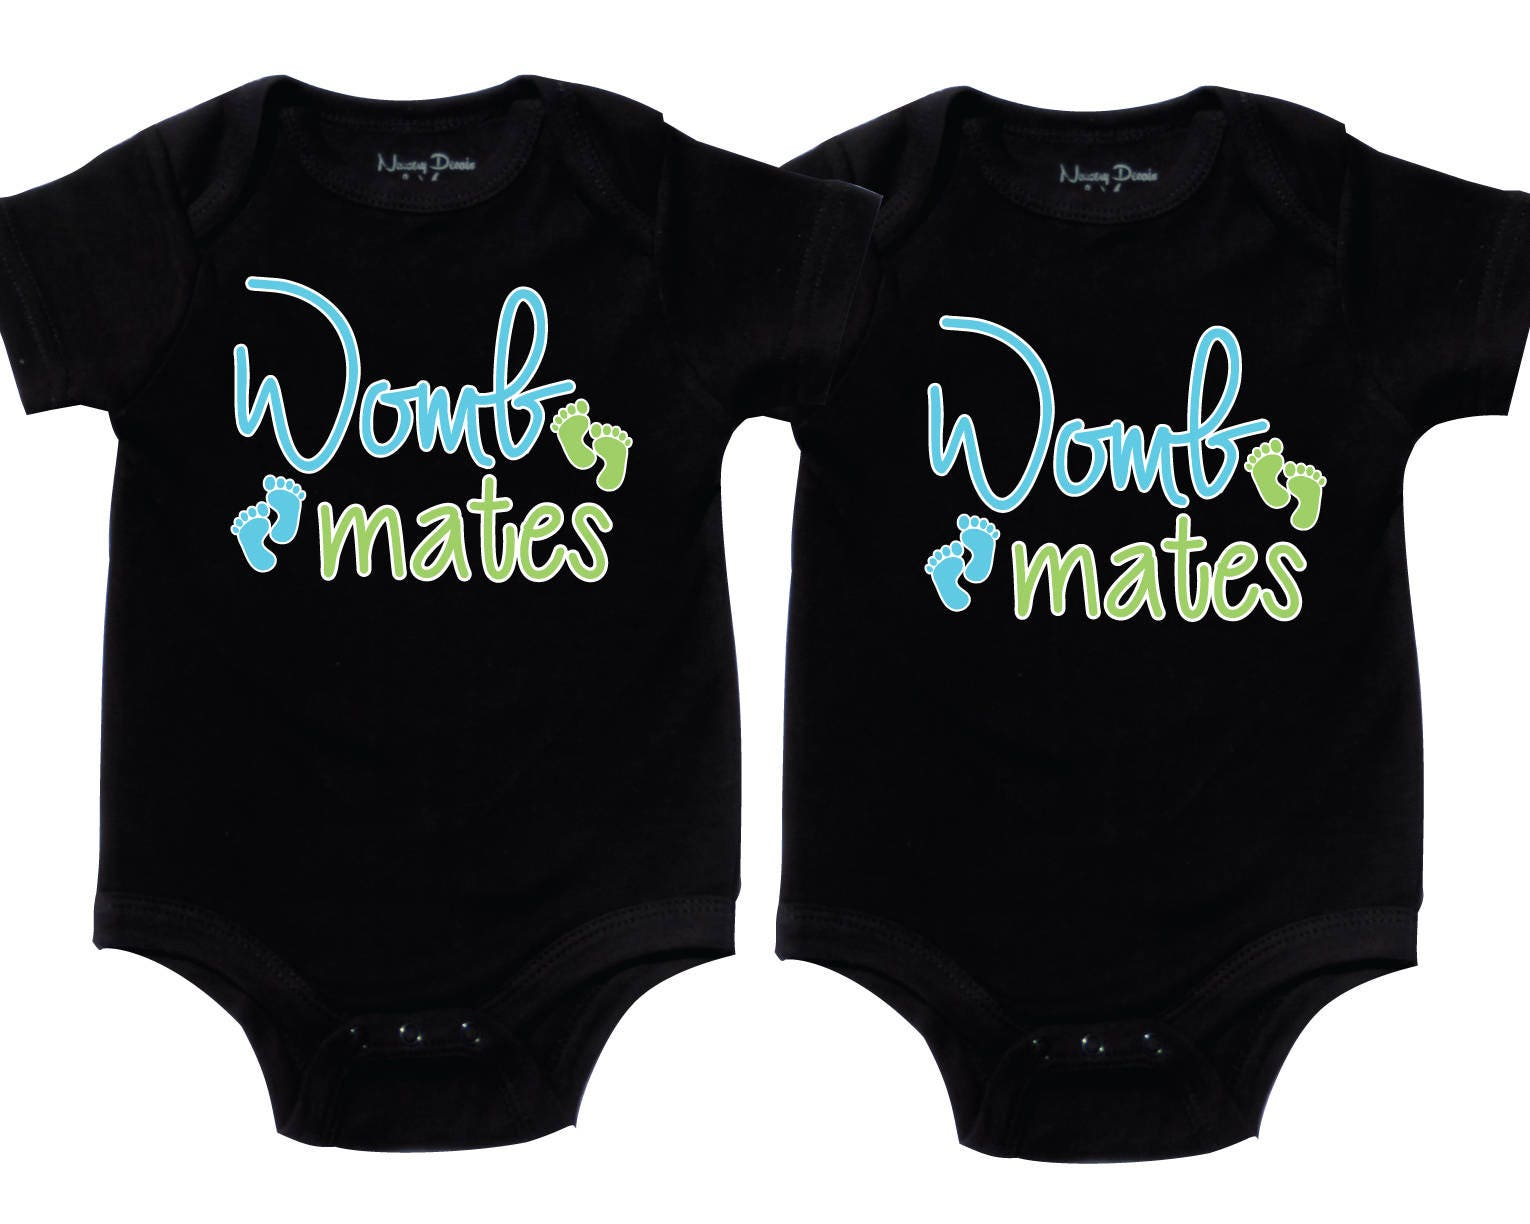 729a48adef9 Twins twin boys matching twin outfits twin boy twin girls etsy jpg  1530x1224 Boys matching twin